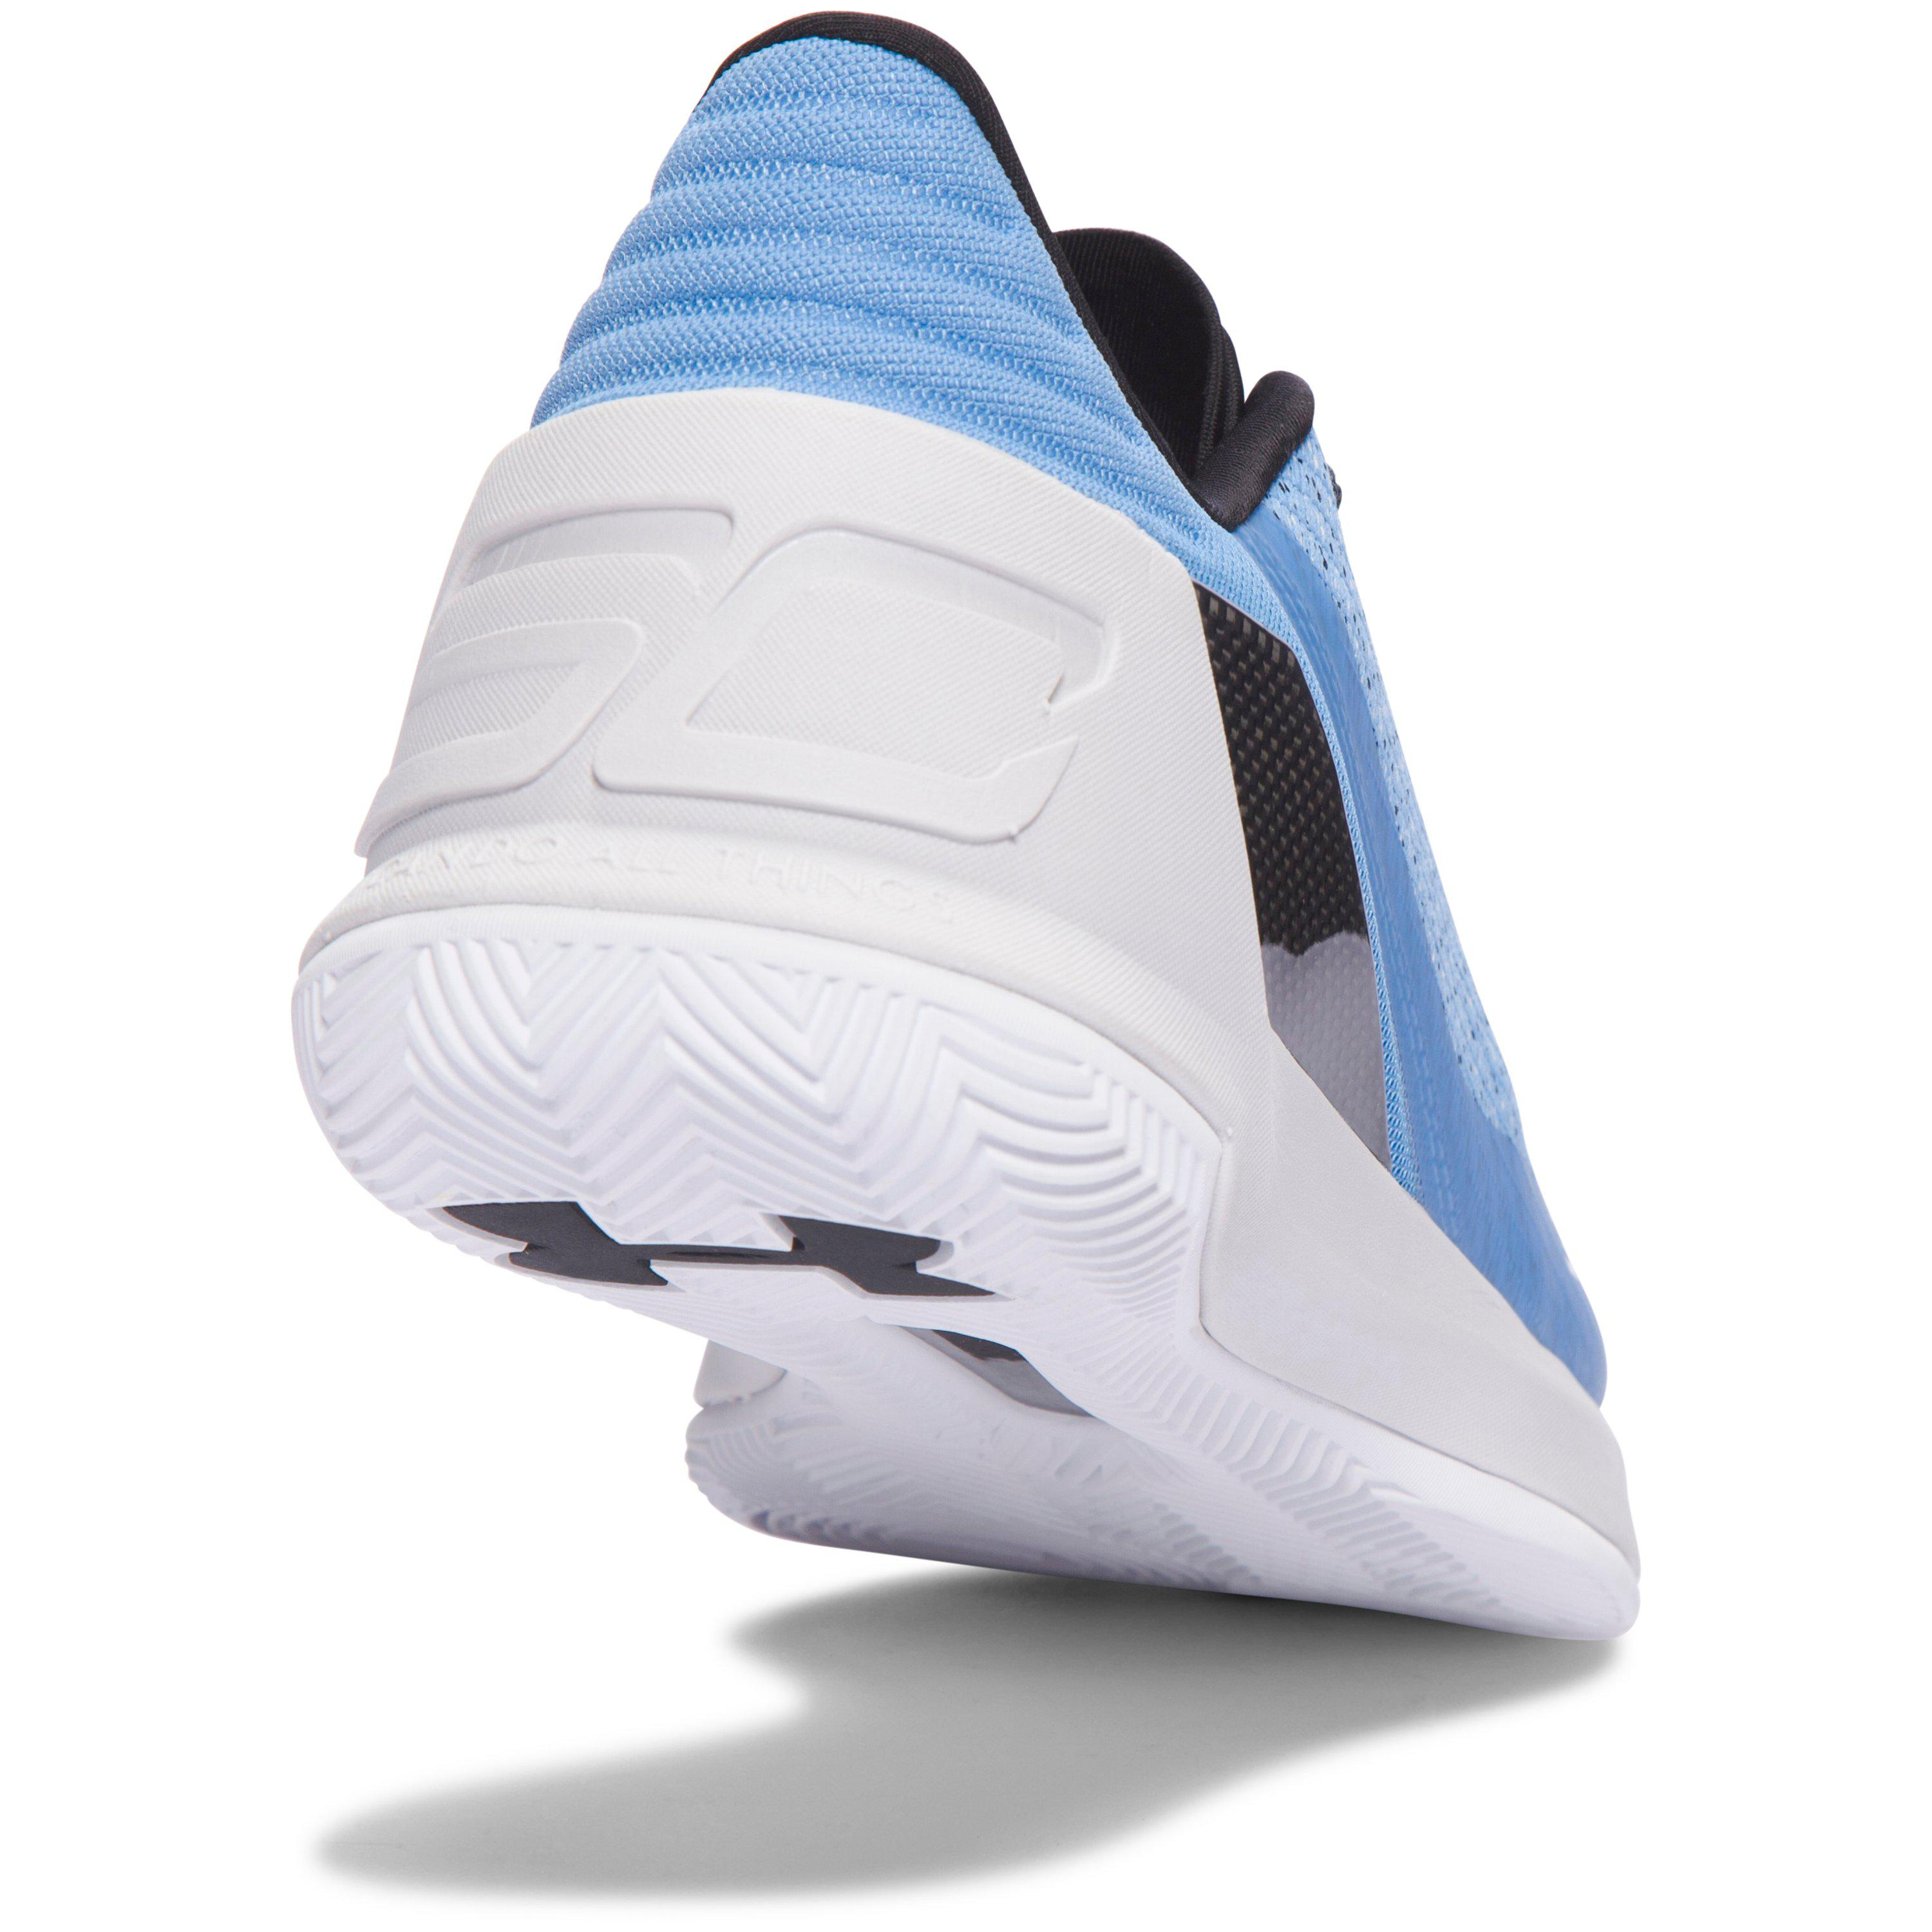 234d496ad1b ... promo code for lyst under armour mens ua curry 3 low basketball shoes  in blue 3c9f2